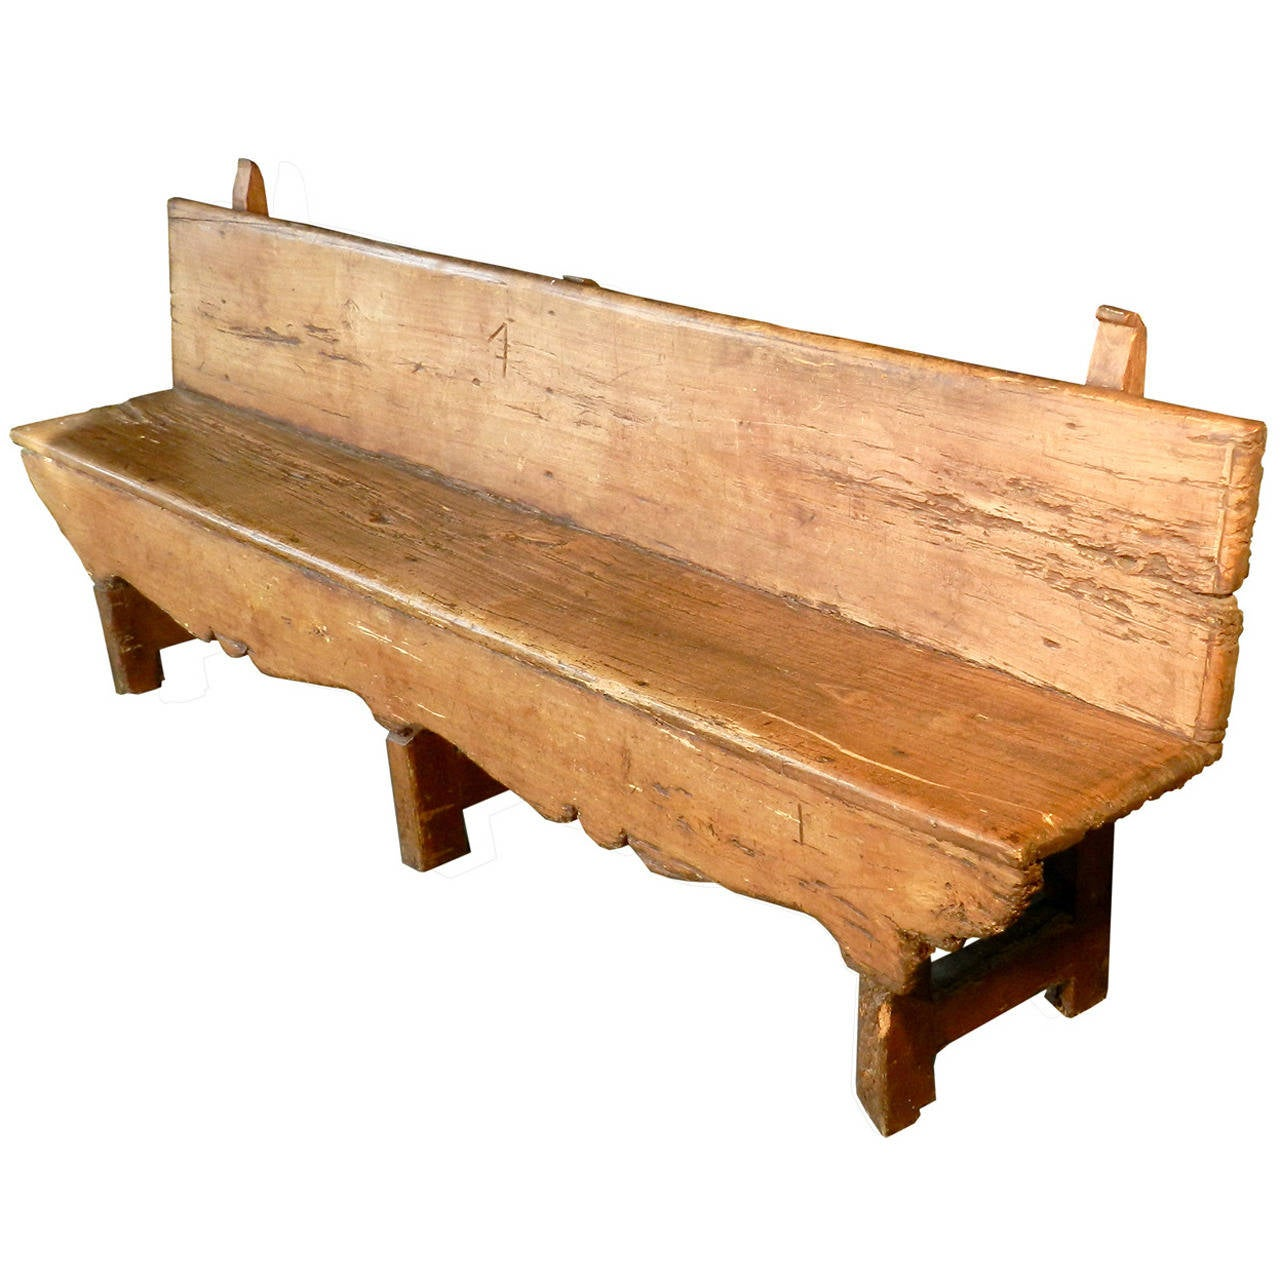 18th Century Primitive Bench For Sale at 1stdibs